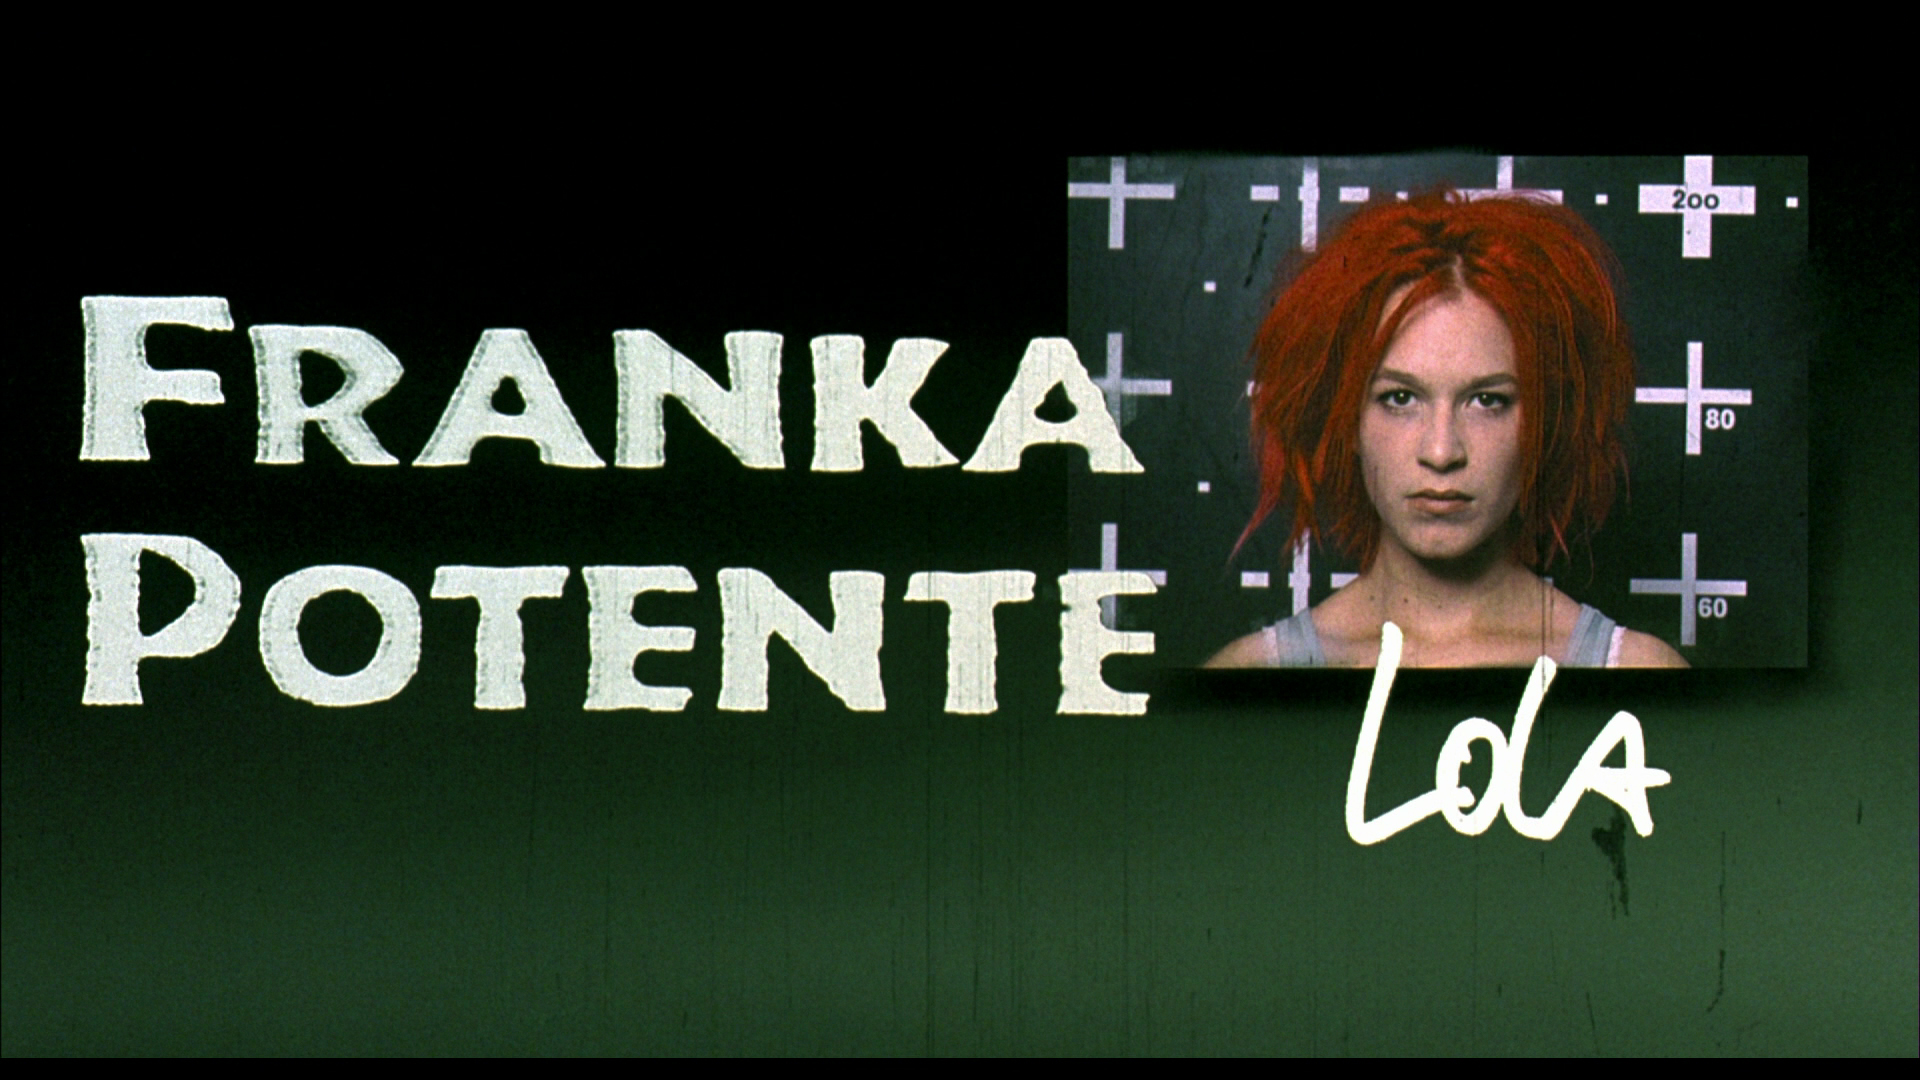 land of whimsy run lola run run lola run